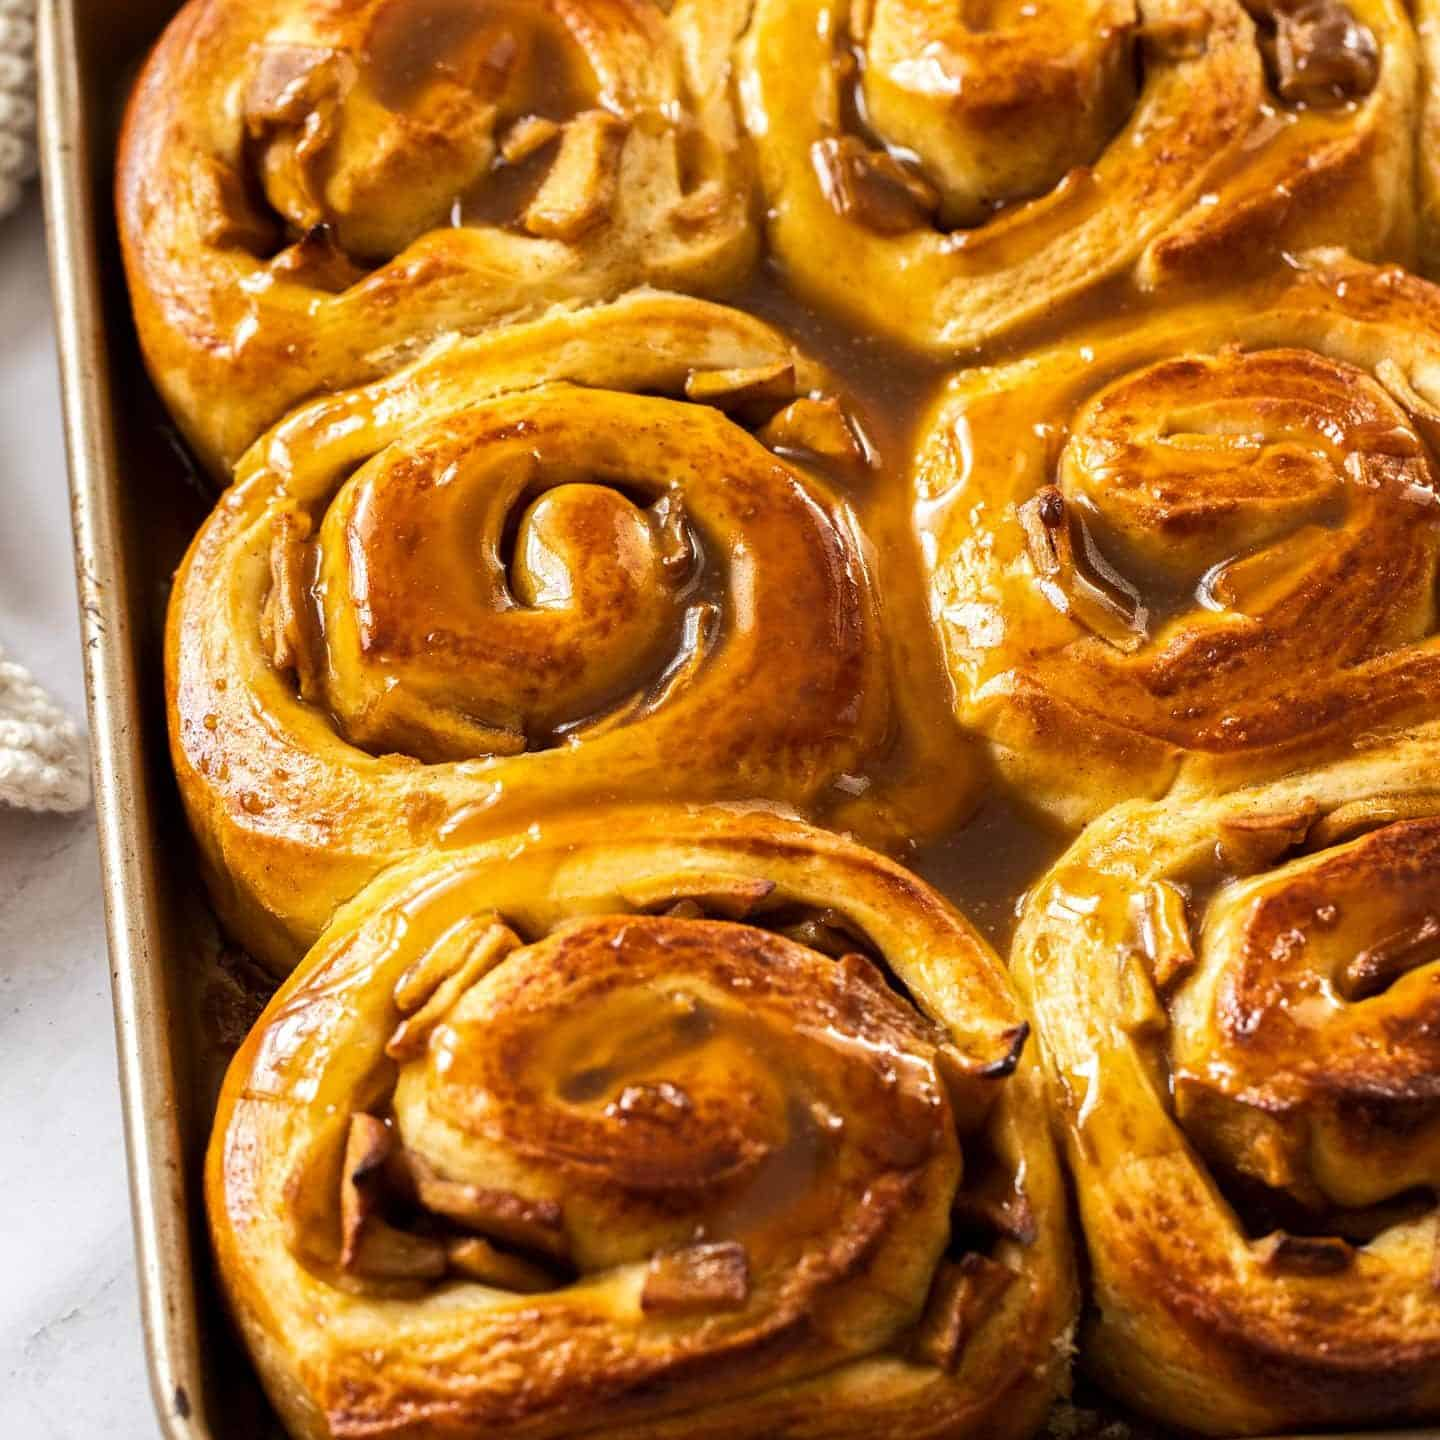 A gold baking tray filled with cinnamon rolls.